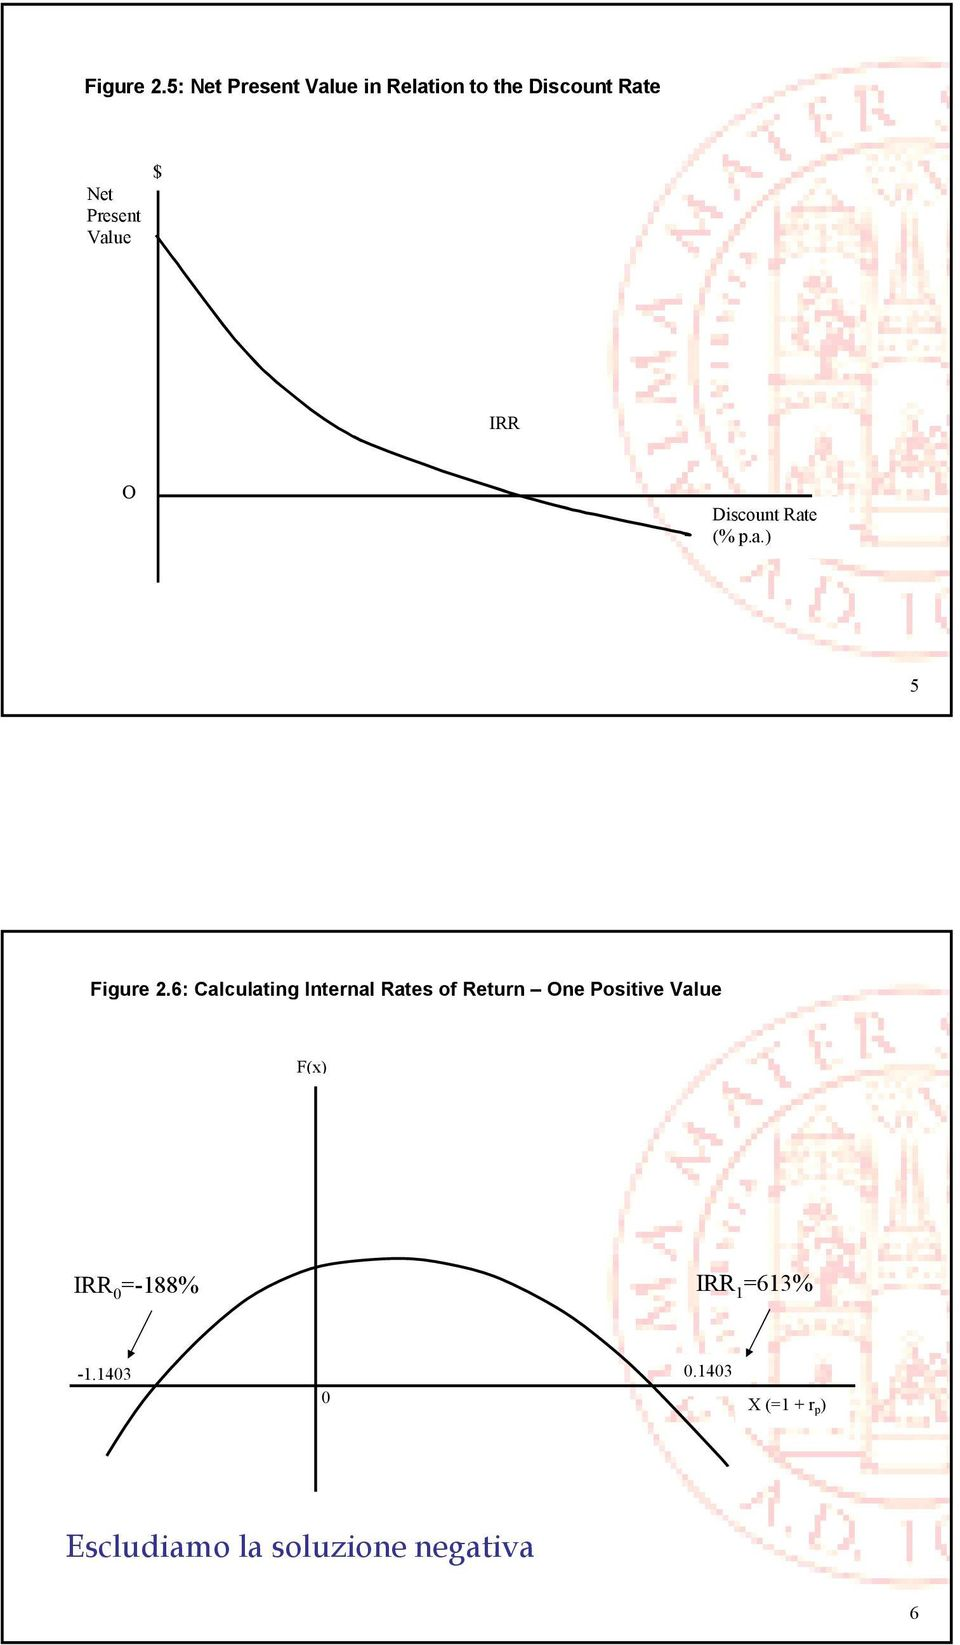 Value IRR O Discount Rate (% p.a.) 5 6: Calculating Internal Rates of